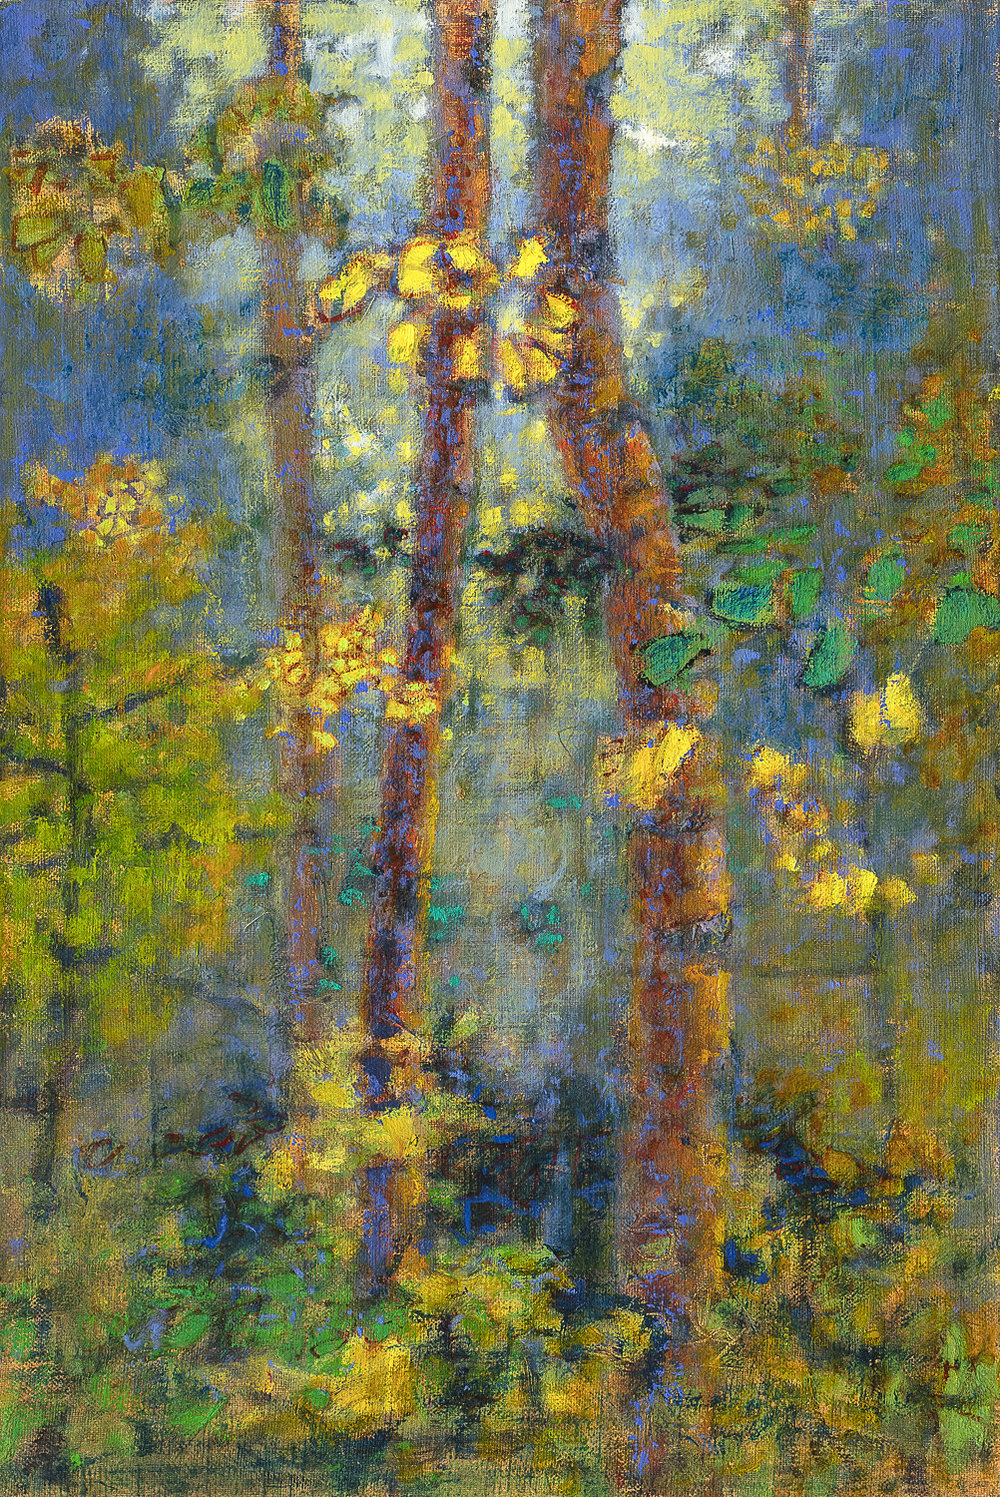 Enchanted Setting | oil on linen | 18 x 12"